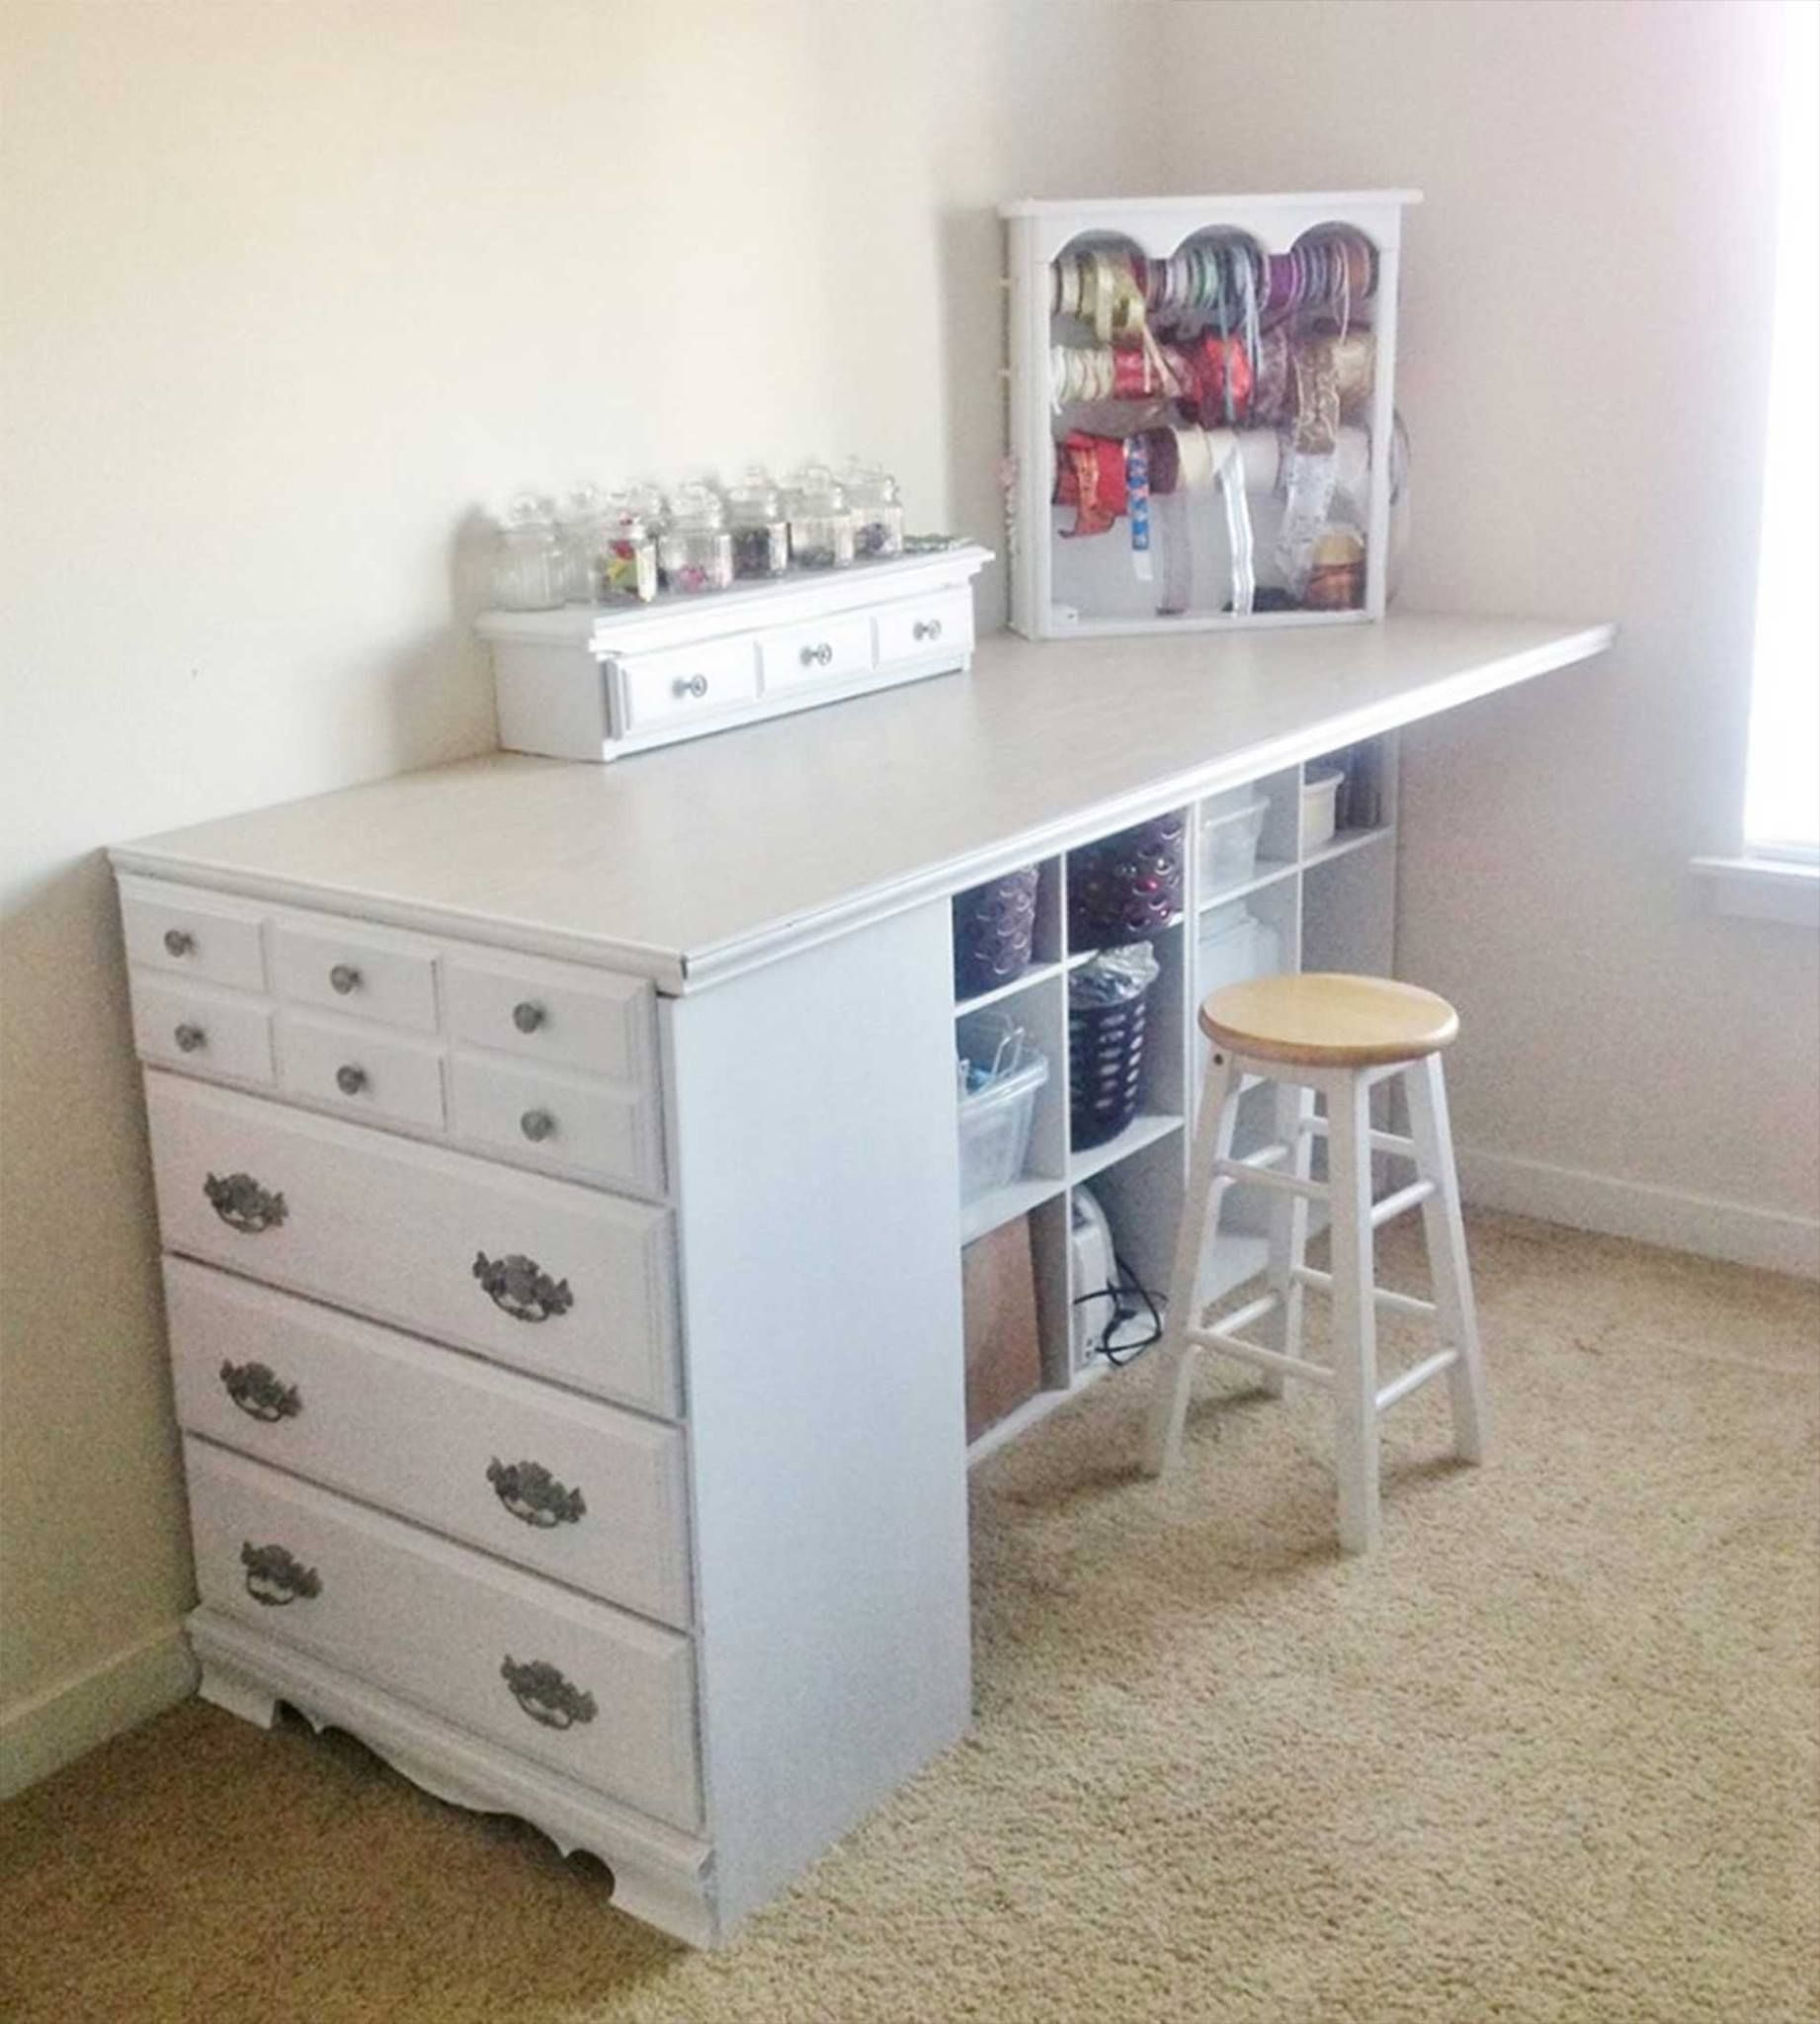 A dresser turned into a table u storage with some plywood u cubby